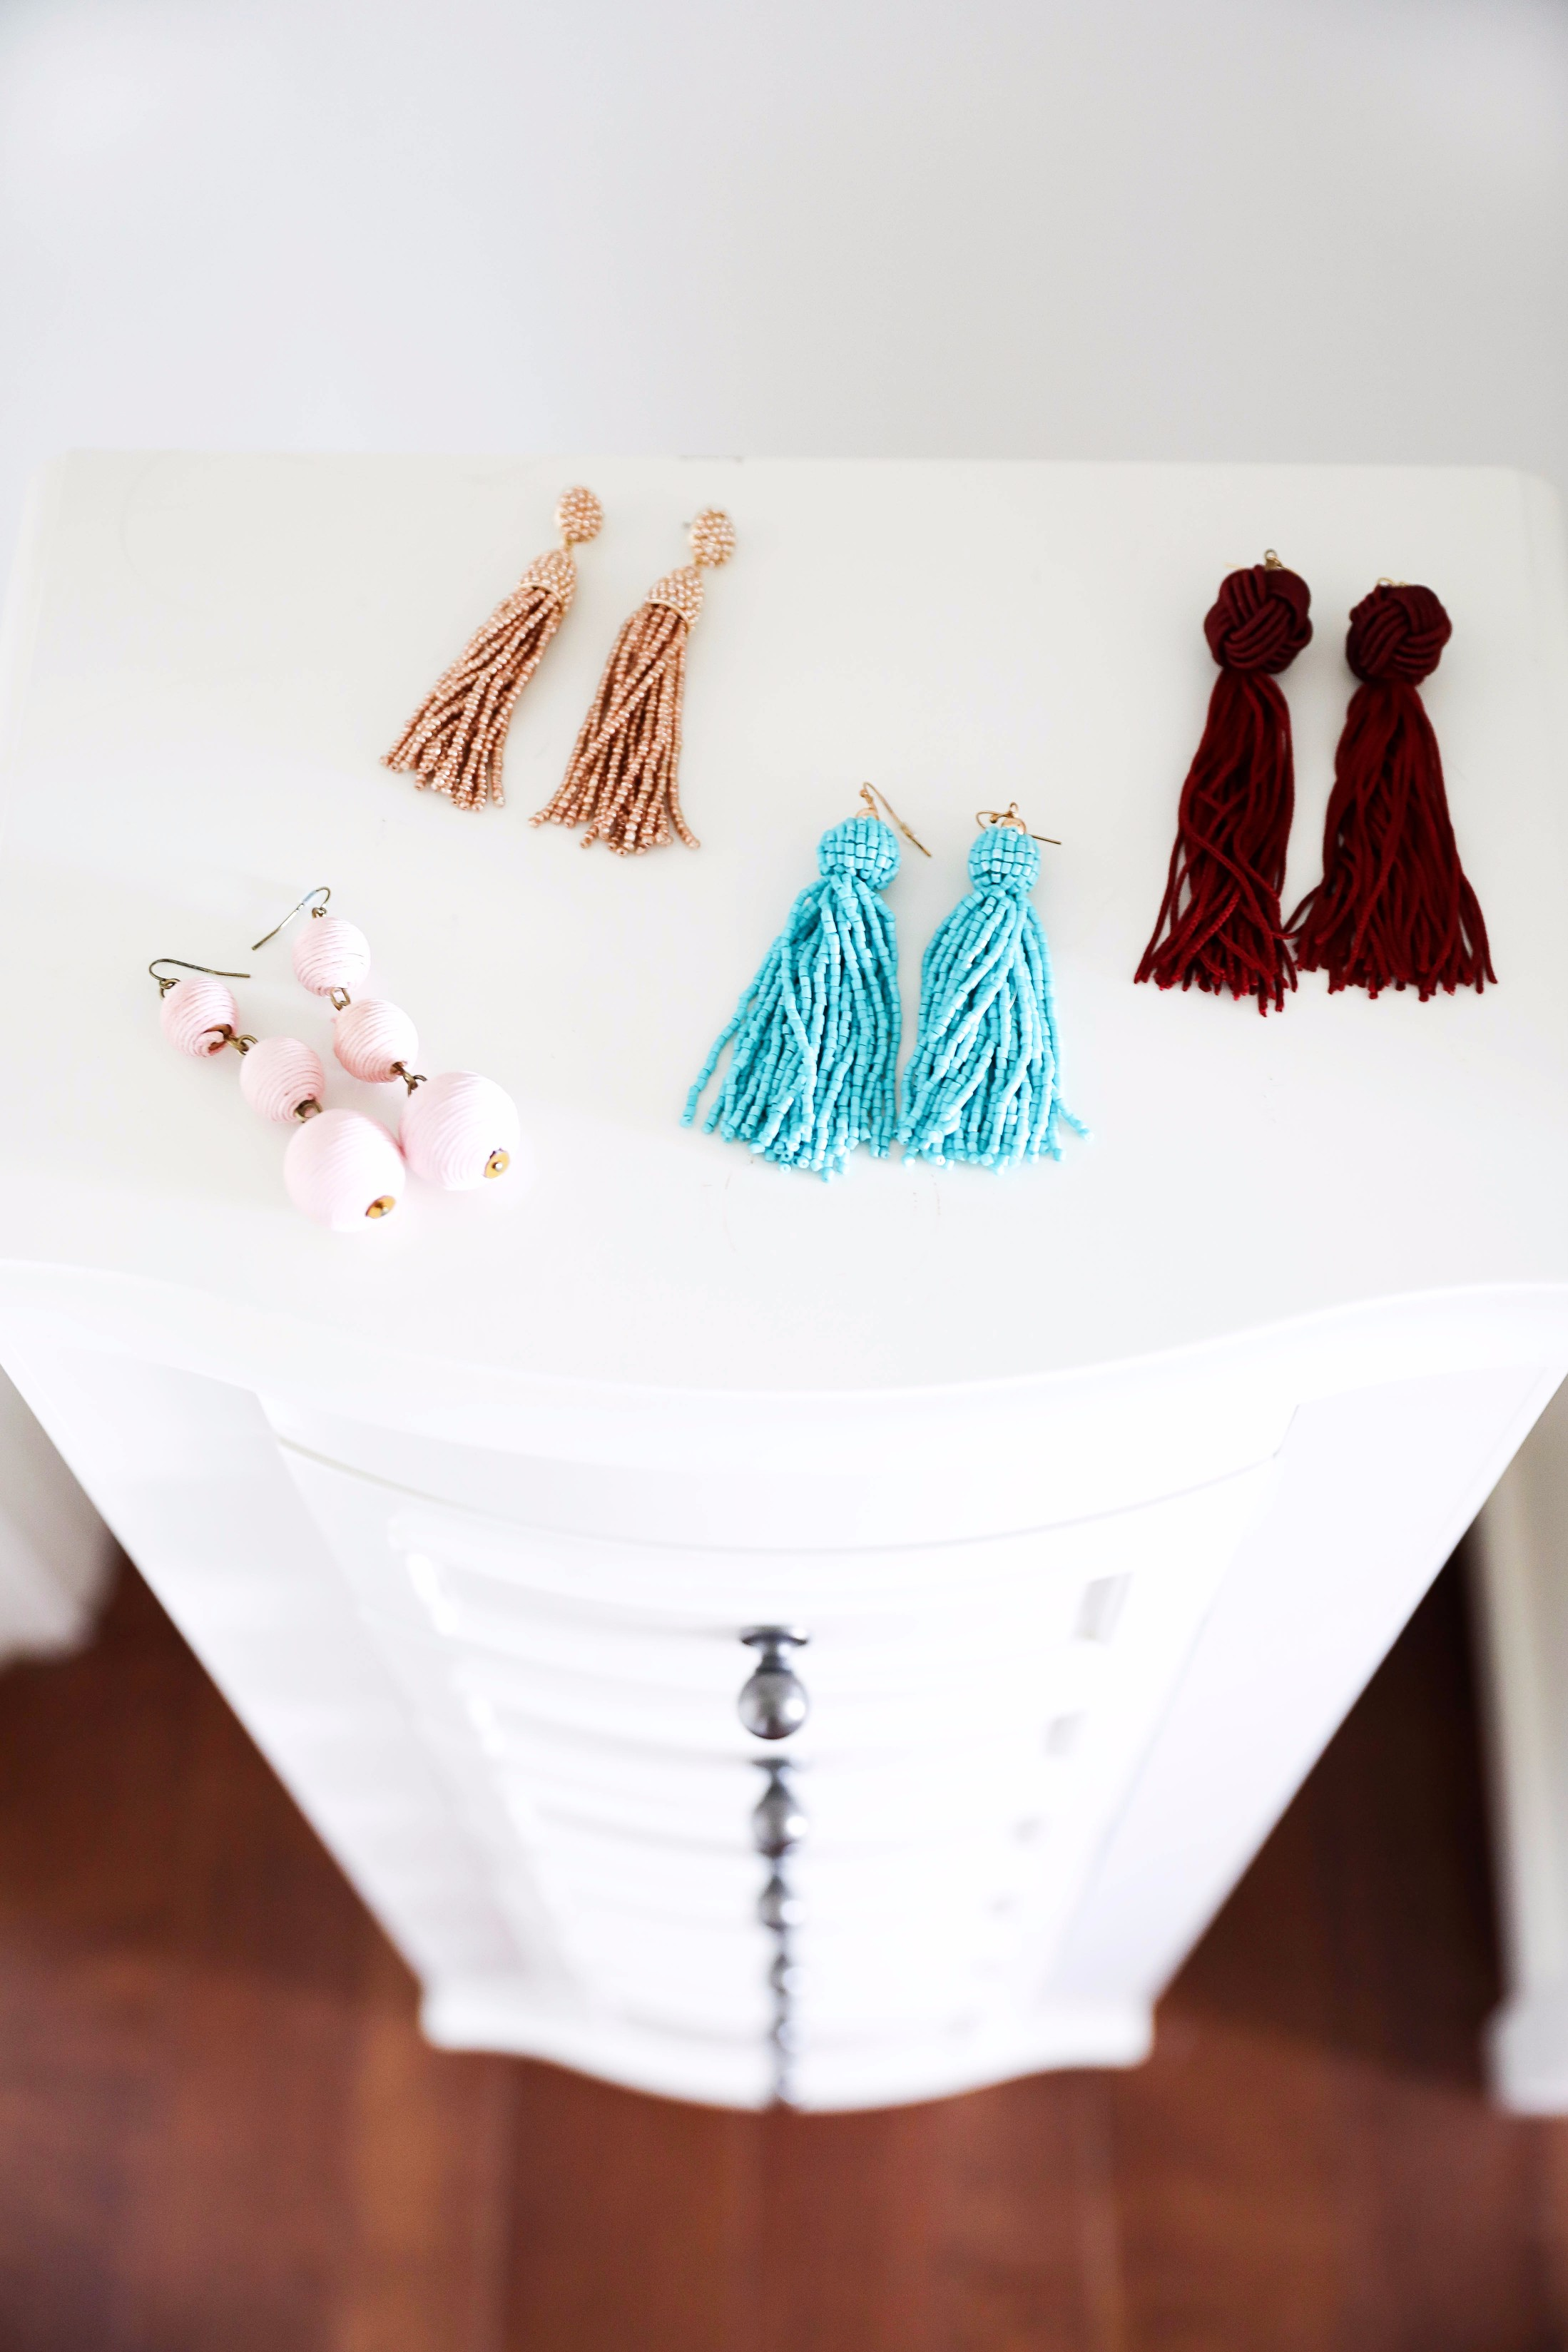 Tassel statement earrings June favorites by fashion and lifestyle blogger lauren lindmark on daily dose of charm